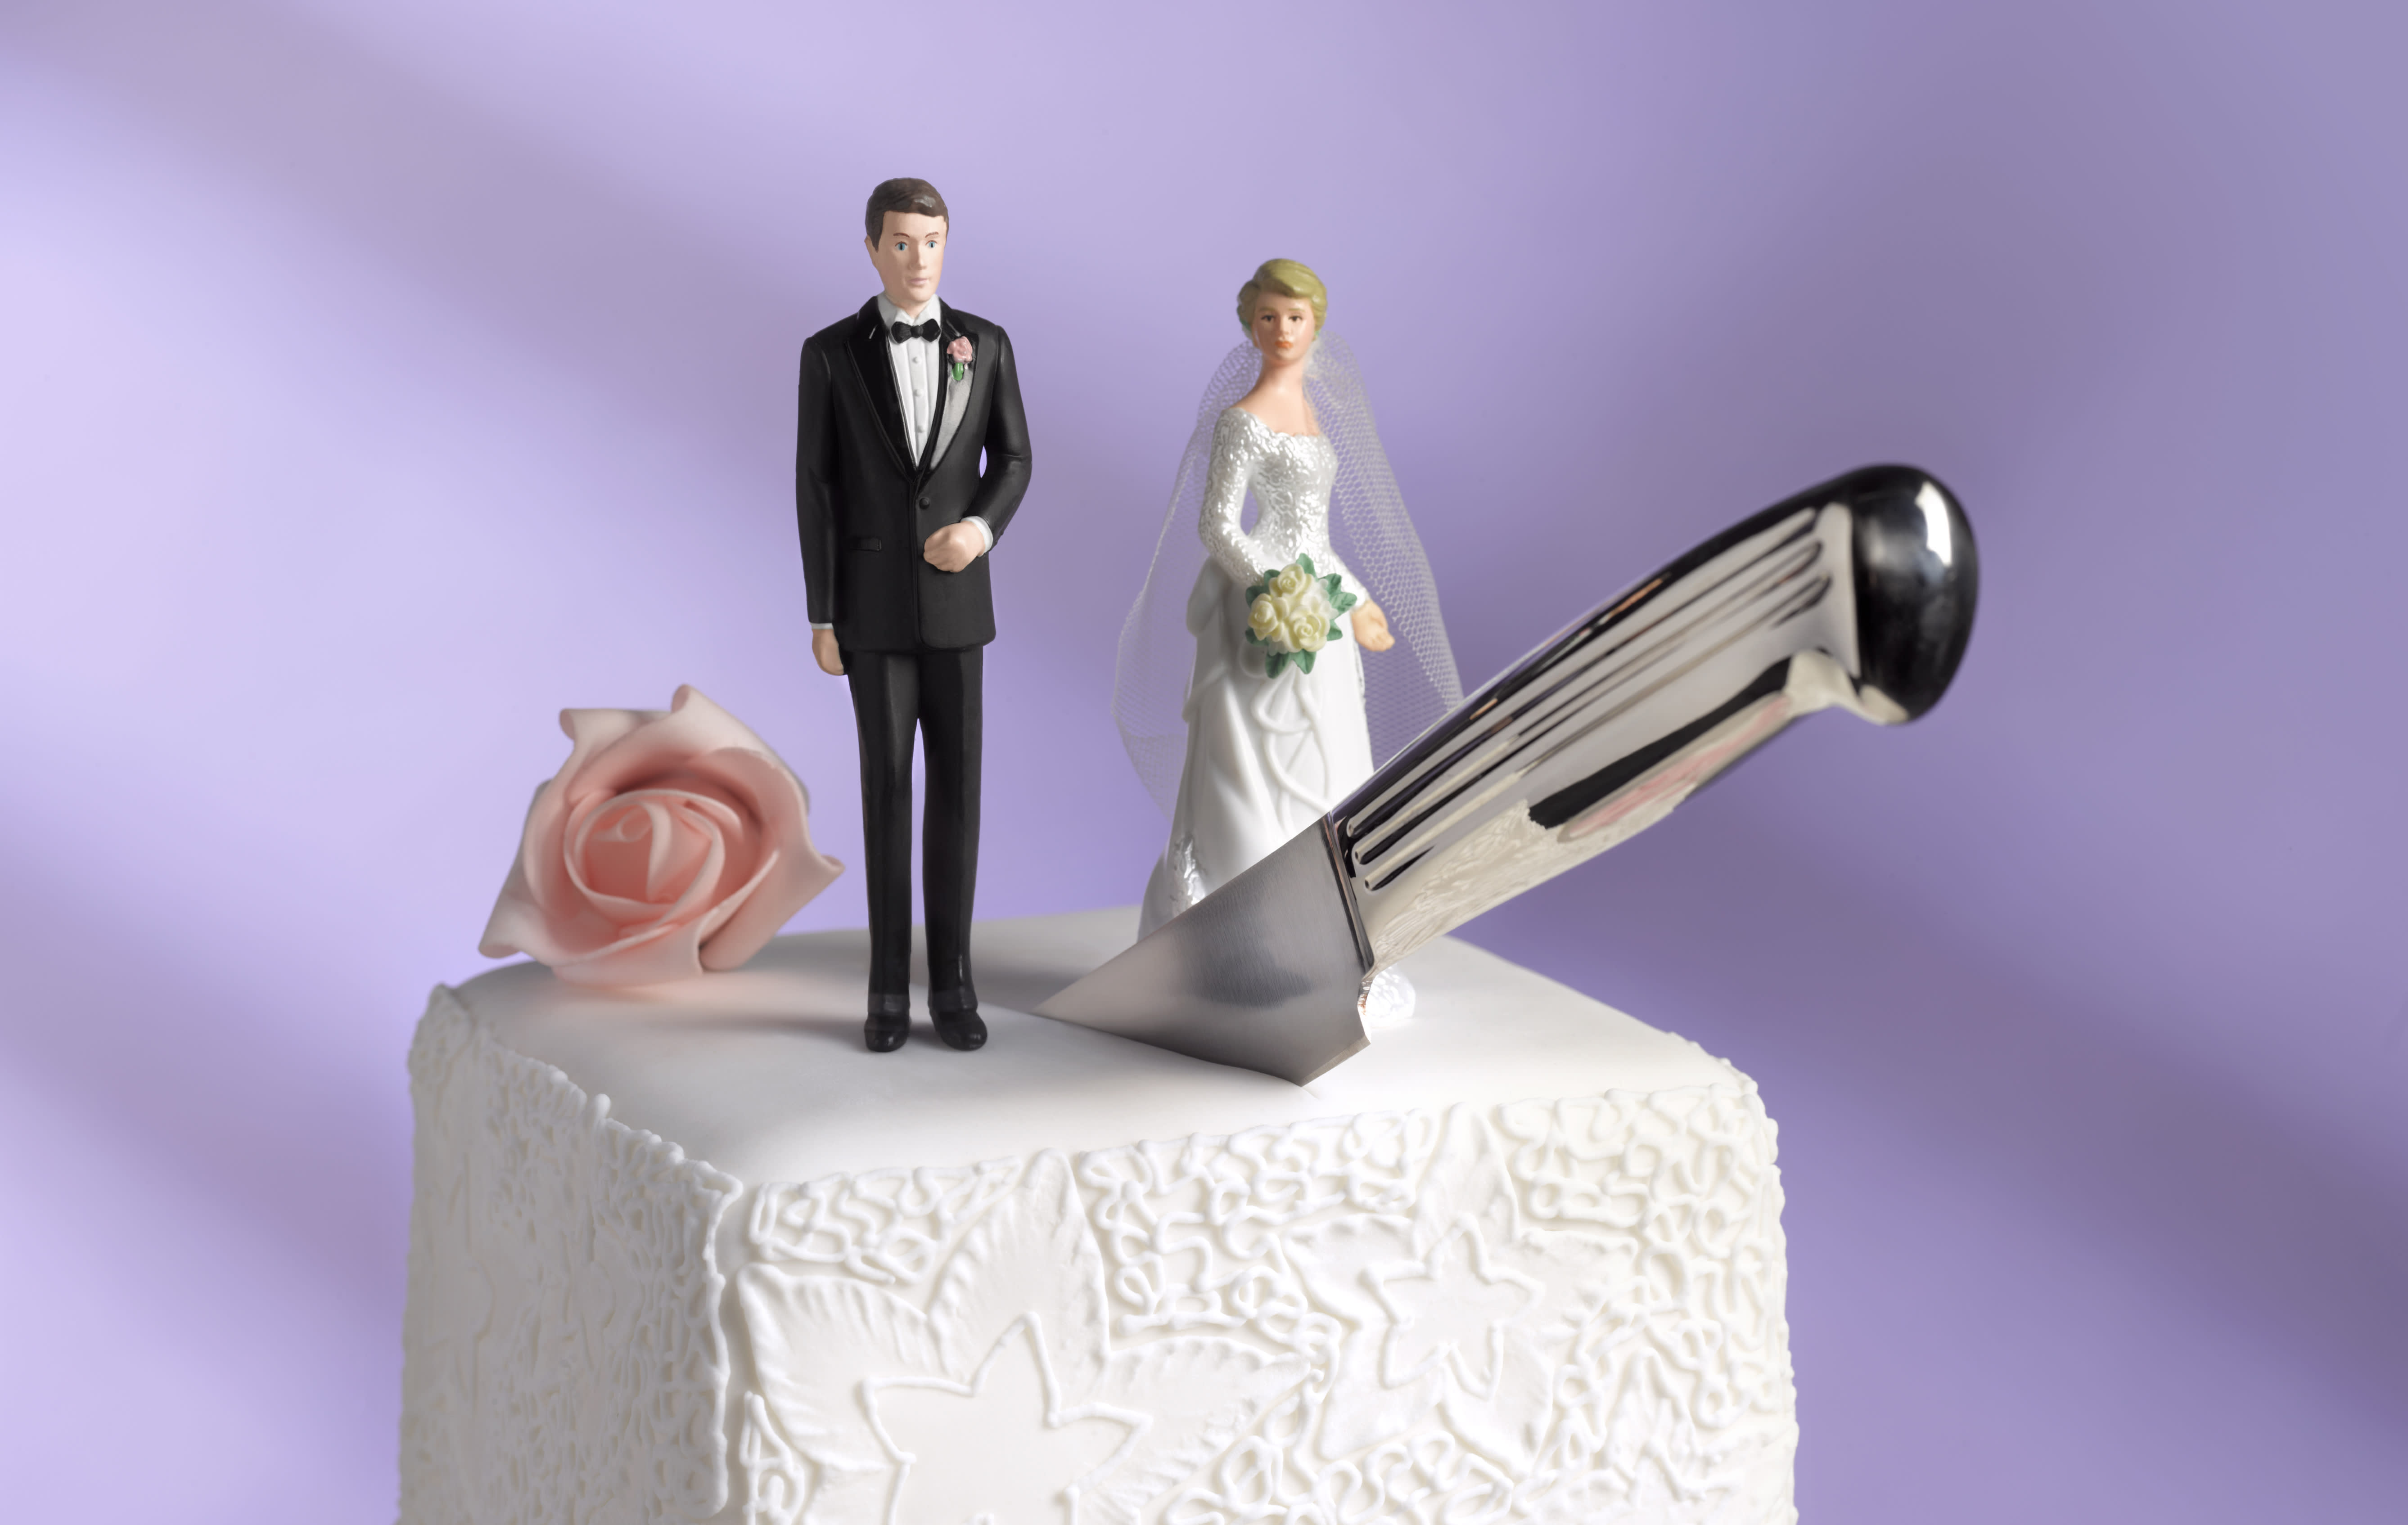 Couples weigh 'strategic divorce' to save on taxes